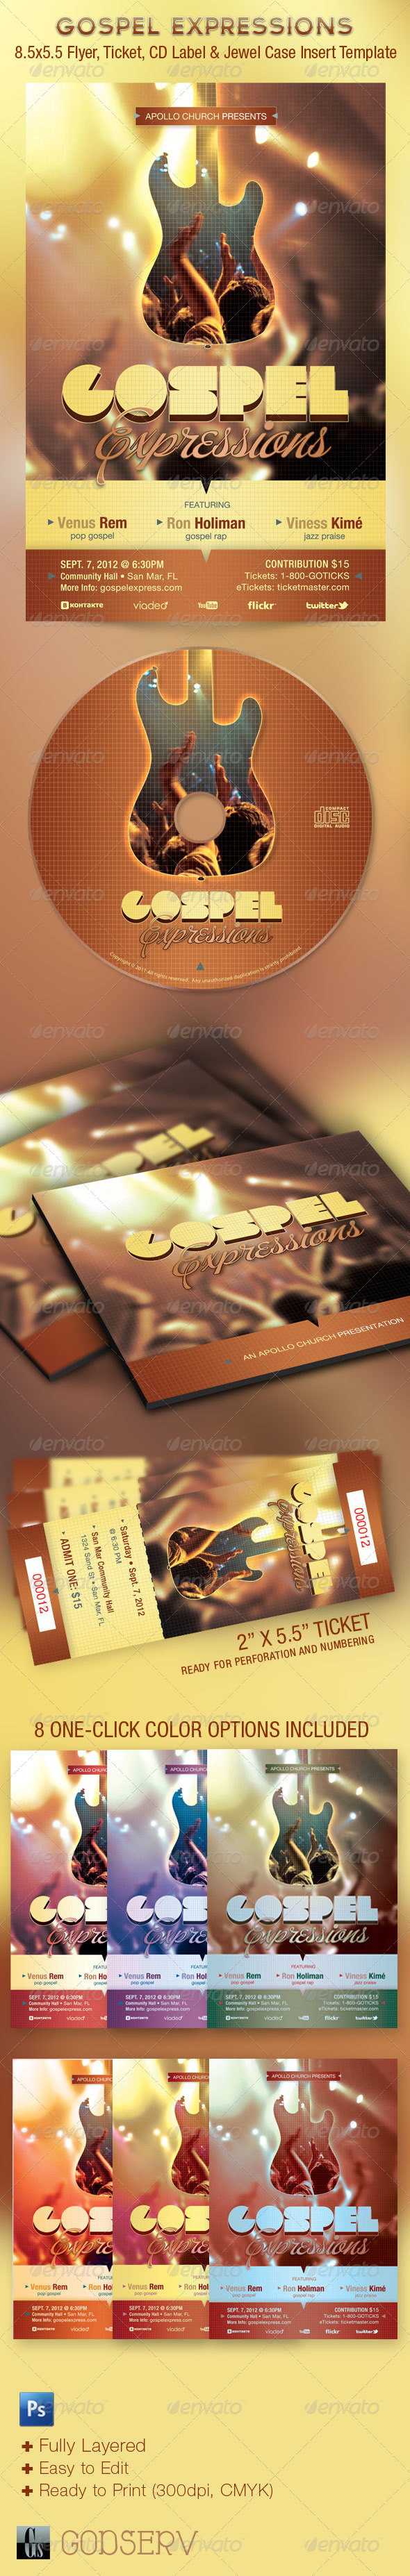 Gospel Expressions Flyer Ticket and CD Template